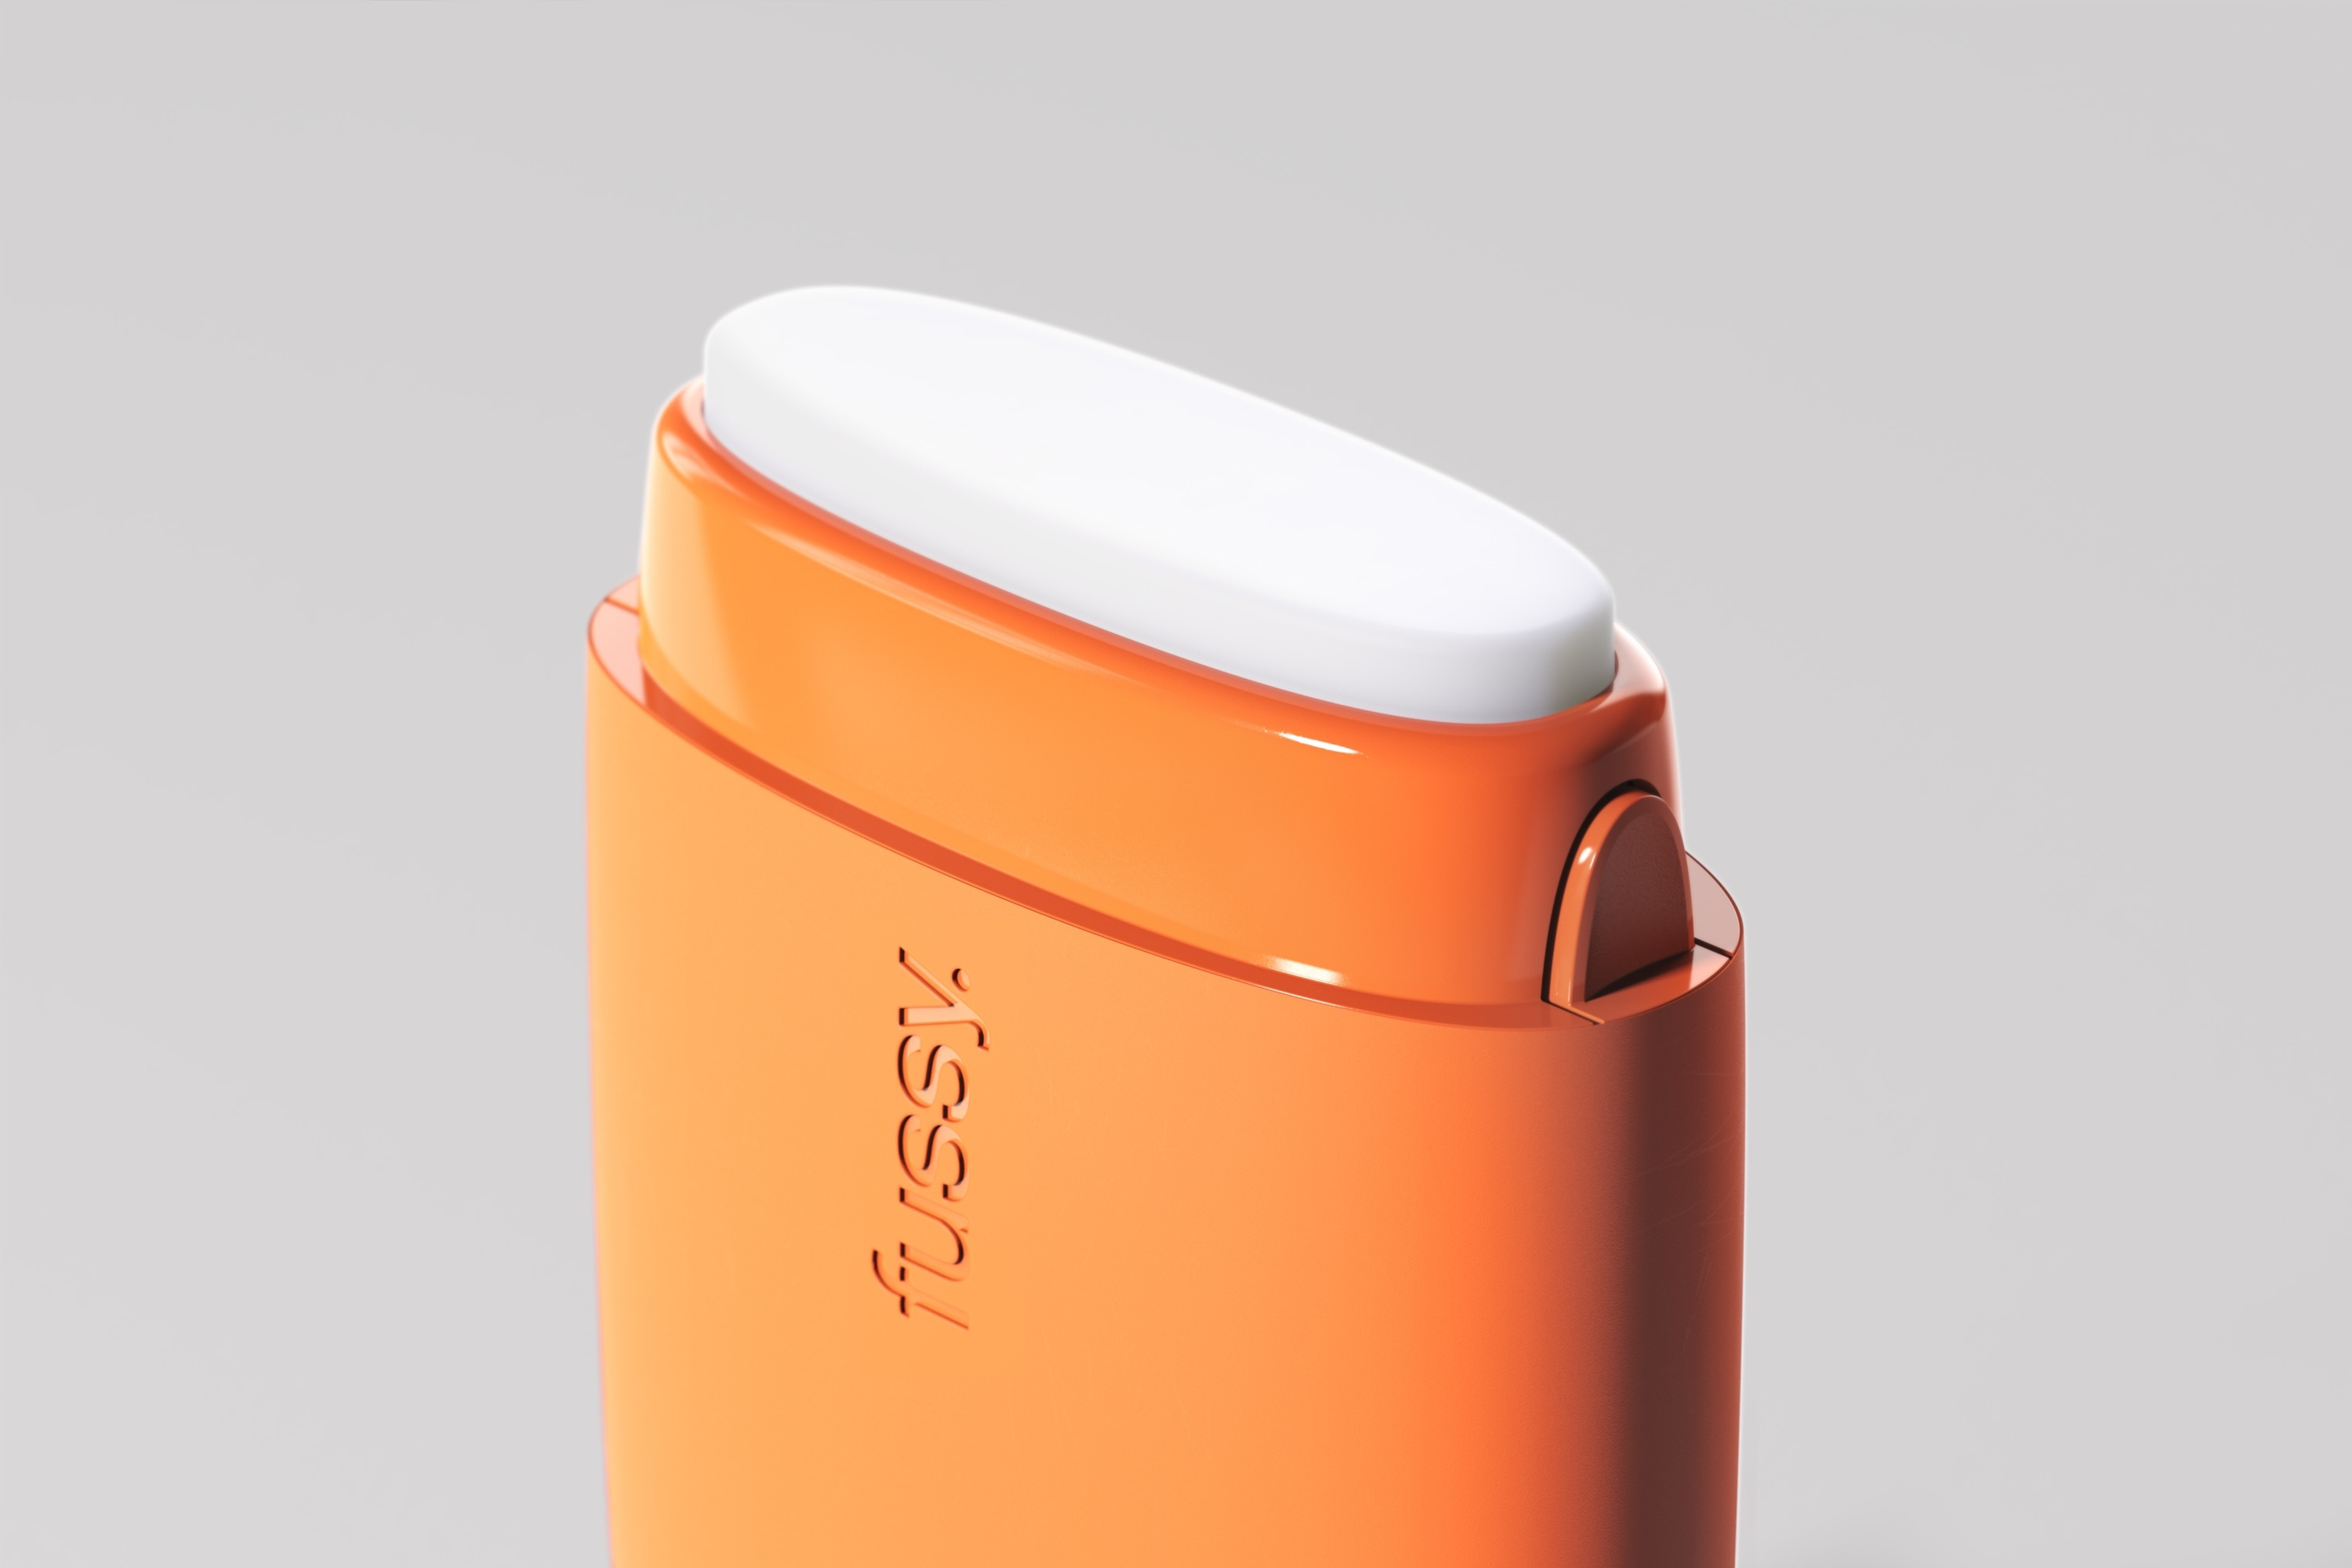 Blond-Design-Agency-Cosmetics-Packaging-Sustainable-Eco-Refillable-Deodorant-Fussy-01